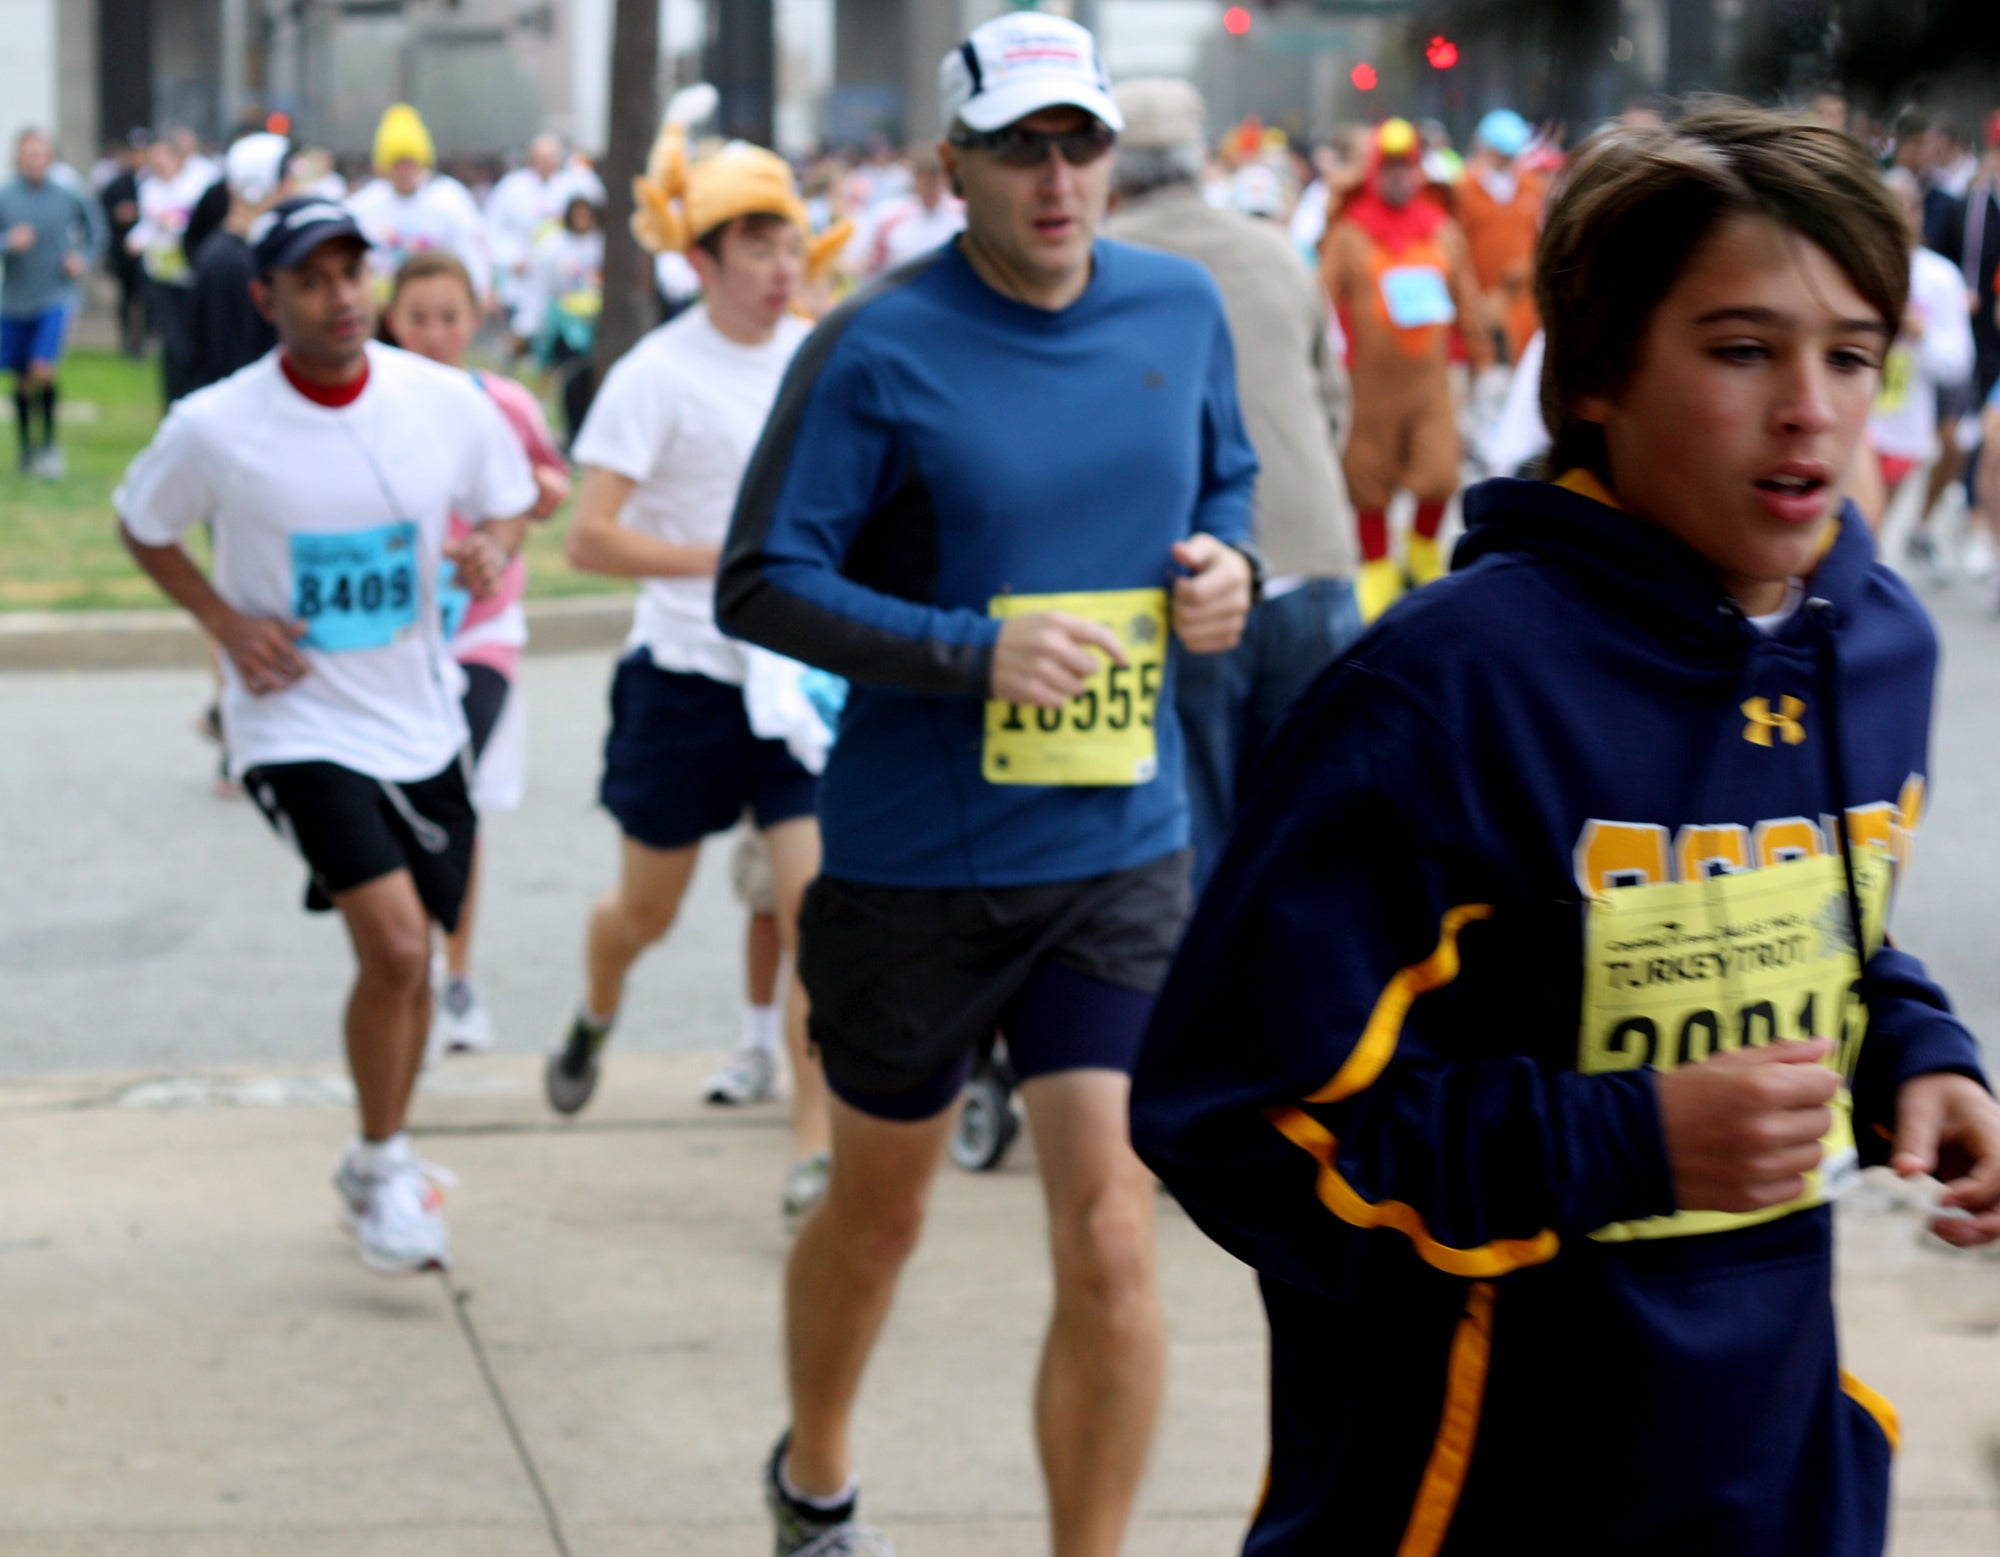 Your last-minute training guide to dominating this year's Turkey Trot